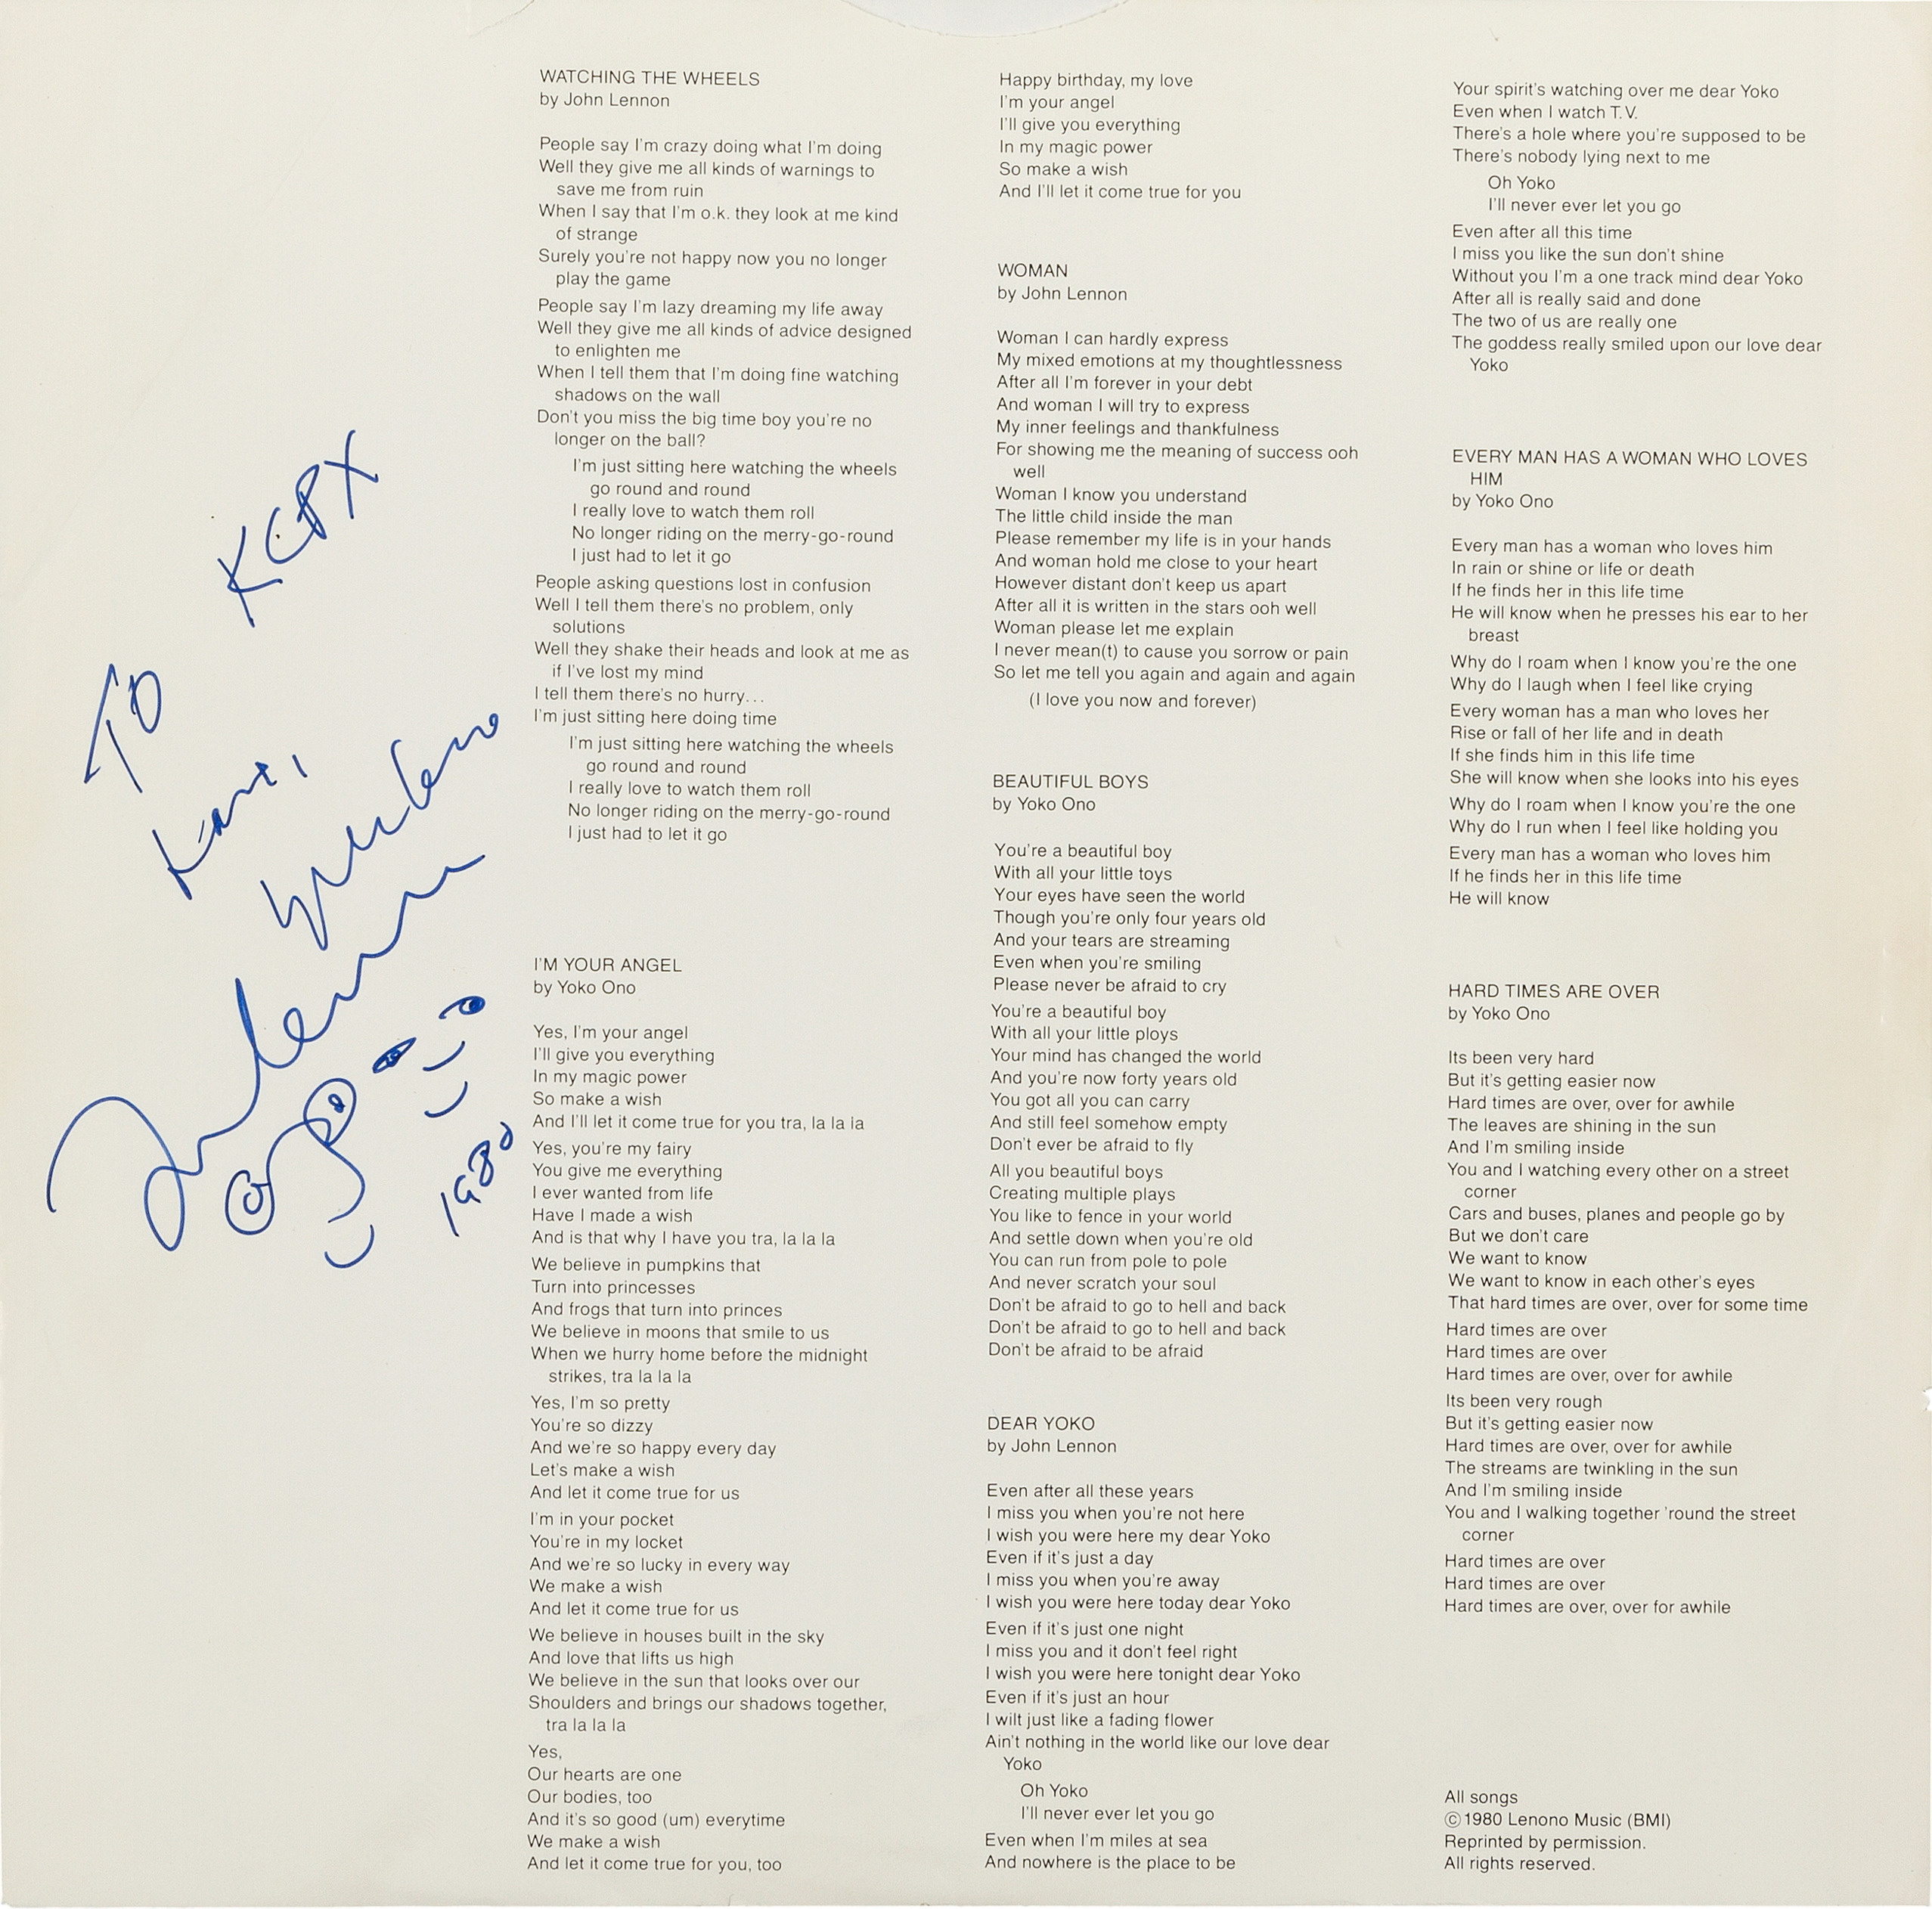 "(Photo courtesy of Heritage Auctions/HA.com) The inner sleeve of a promo copy of the John Lennon/Yoko Ono album ""Double Fantasy"" was autographed for Salt Lake City radio station KCPX just hours before Lennon was murdered on Dec. 8, 1980. The album was just put up for auction, with a starting bid of $50,000."